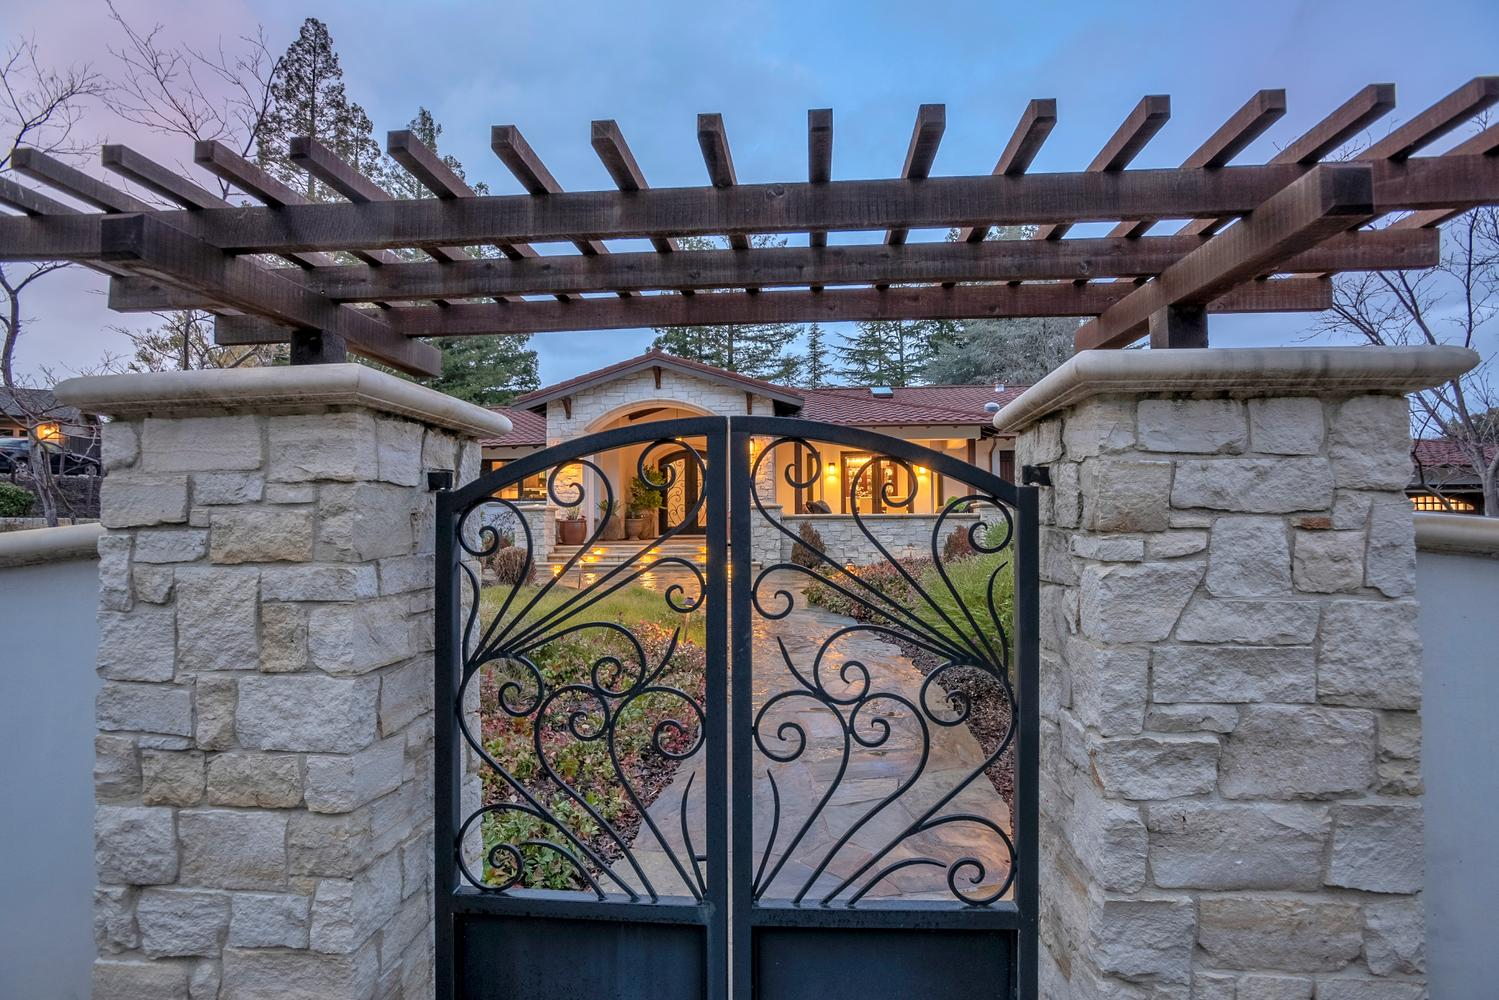 15977 Grandview Dr Monte-large-006-19-Front Gated Entry at Dusk-1499x1000-72dpi.jpg